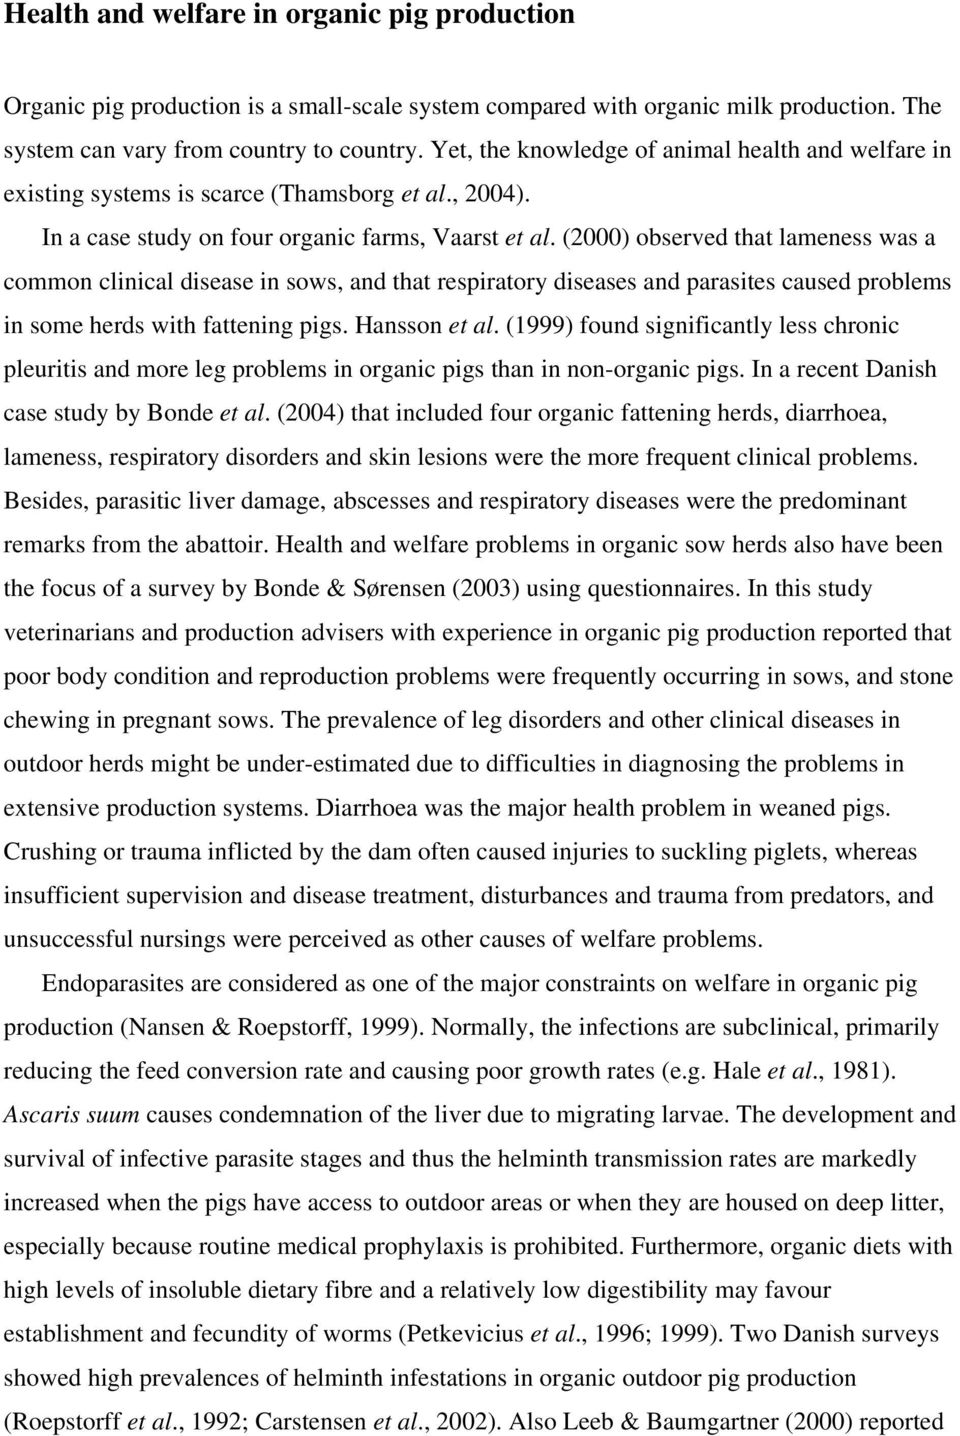 (2000) observed that lameness was a common clinical disease in sows, and that respiratory diseases and parasites caused problems in some herds with fattening pigs. Hansson et al.